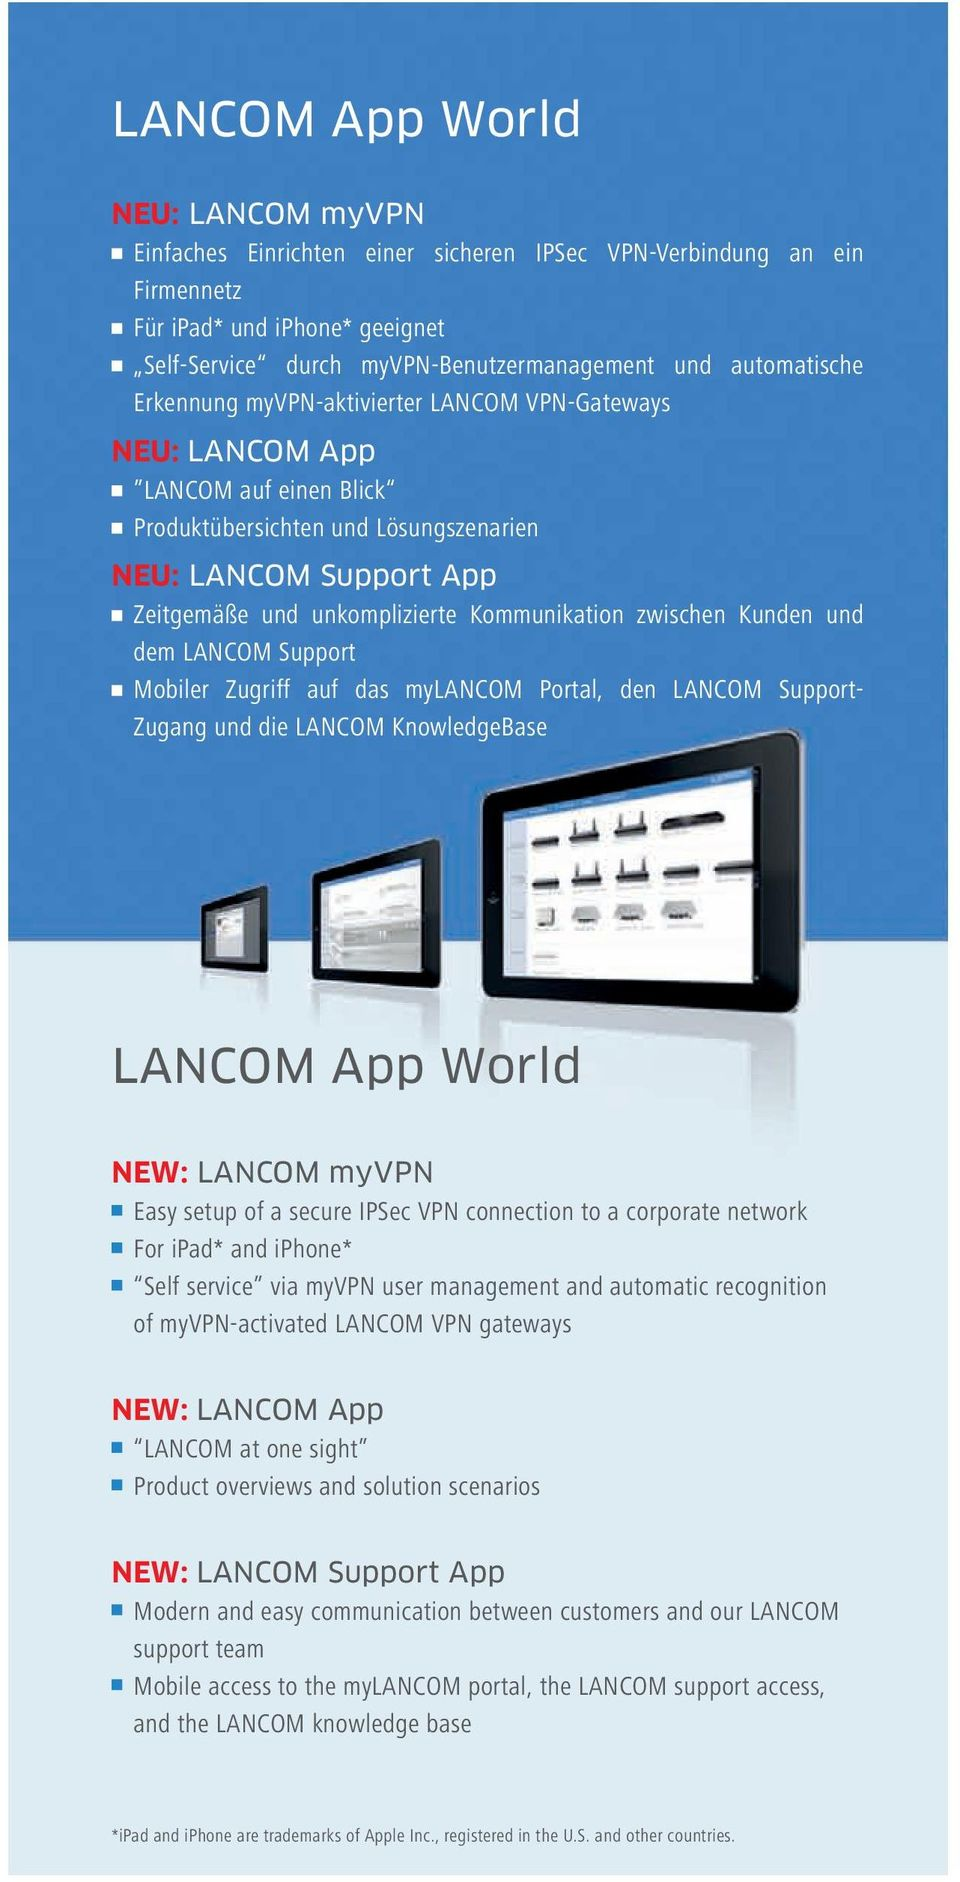 Kommunikation zwischen Kunden und dem LANCOM Support Mobiler Zugriff auf das mylancom Portal, den LANCOM Support- Zugang und die LANCOM KnowledgeBase LANCOM App World NEW: LANCOM myvpn Easy setup of